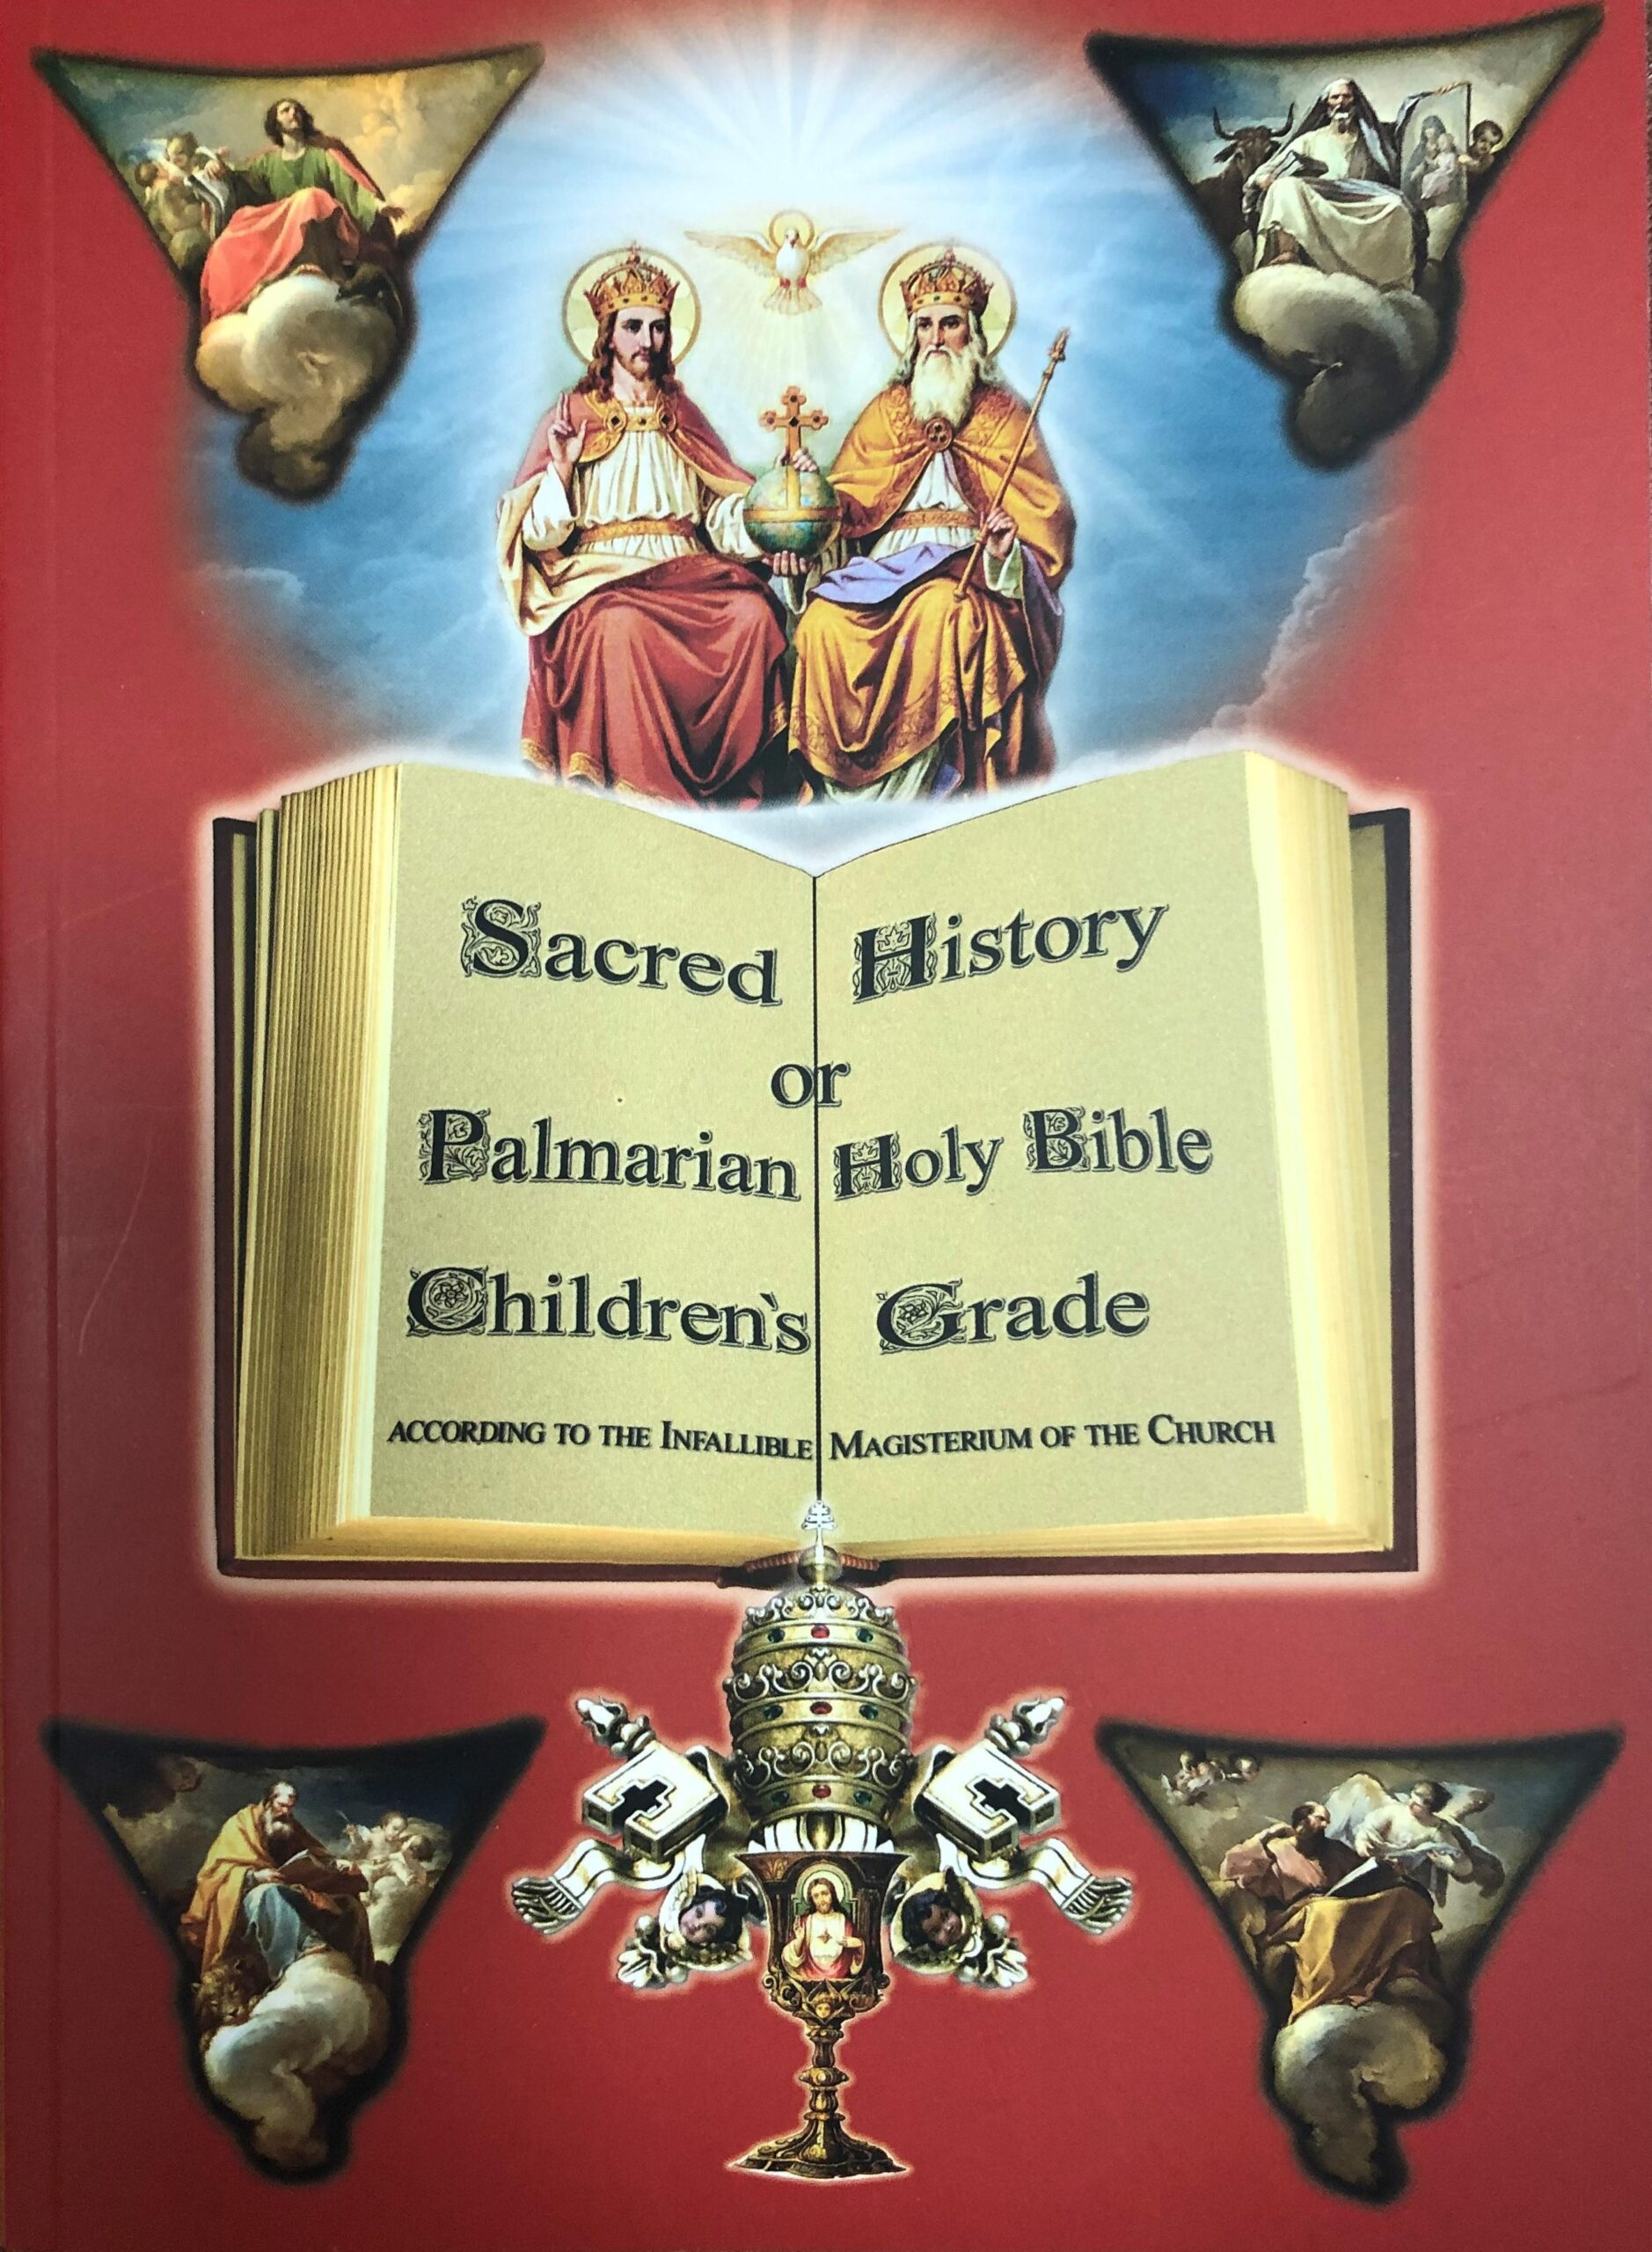 Sacred History or Palmarian Holy Bible Children's Grade <br><br>See more</a>